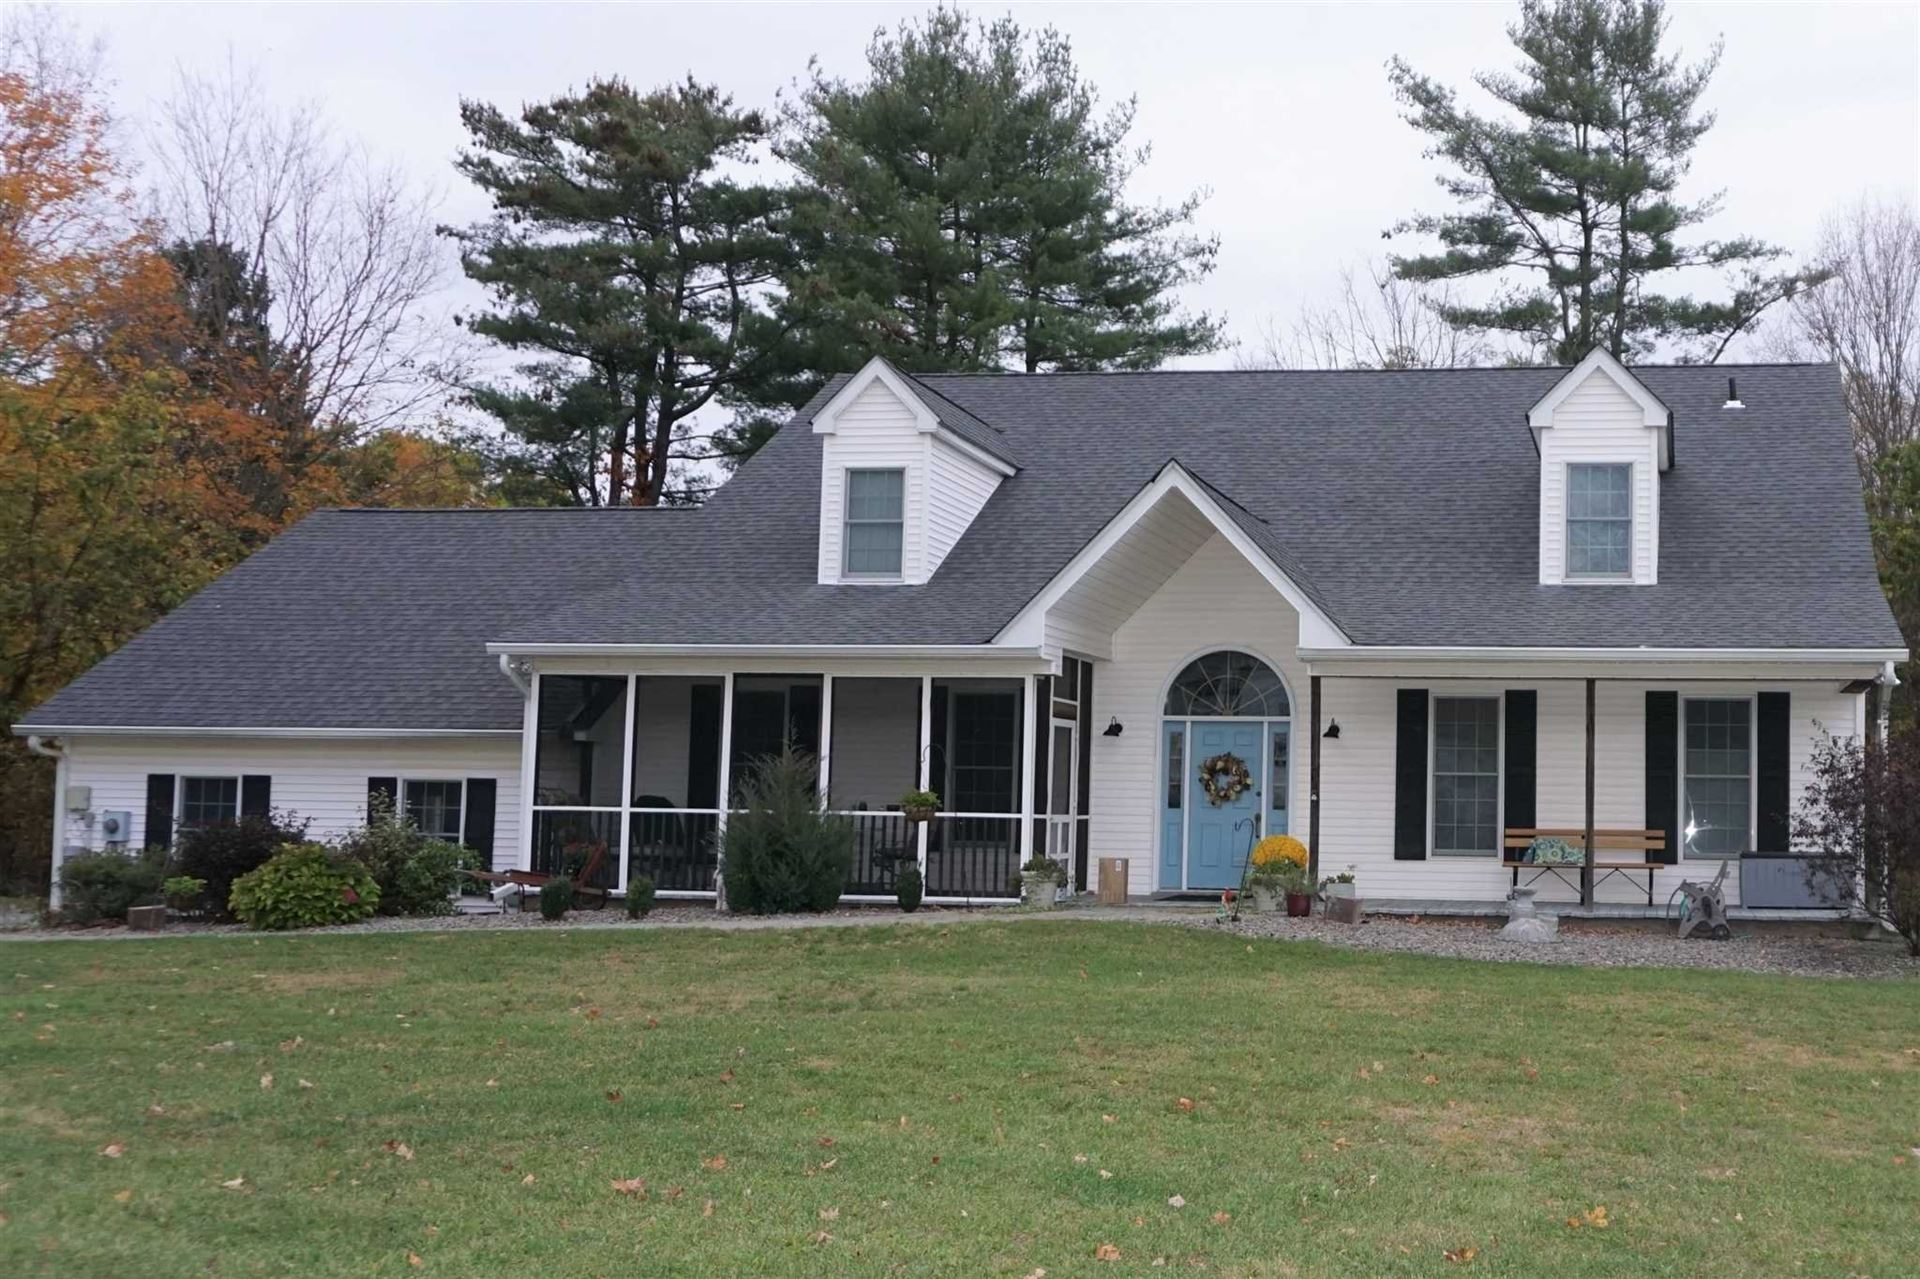 423 ALL ANGELS HILL RD, Wappingers Falls, NY 12533 - #: 395963